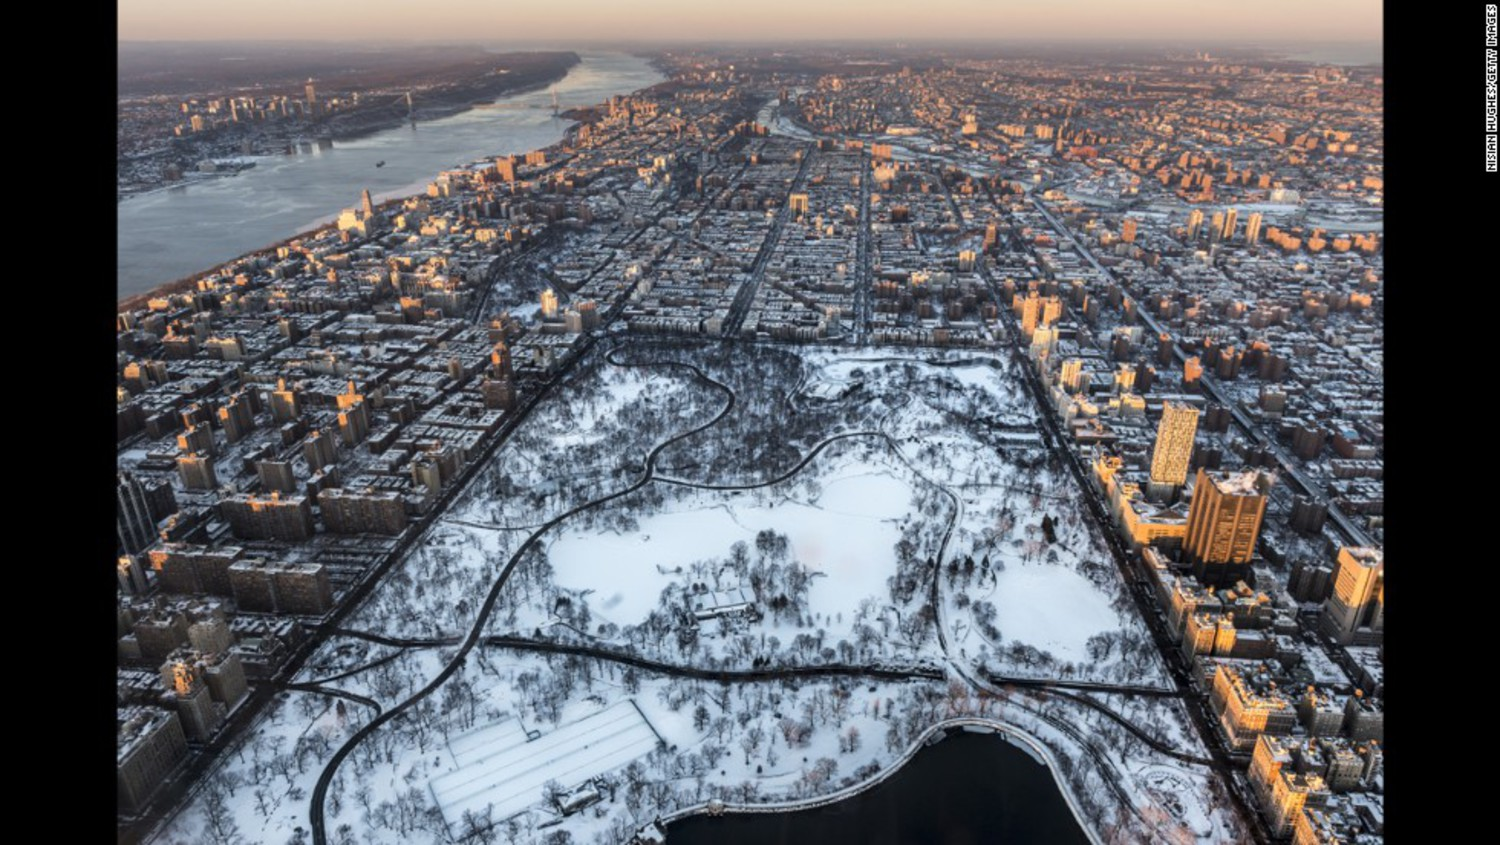 New York's Central Park is covered in snow in January.